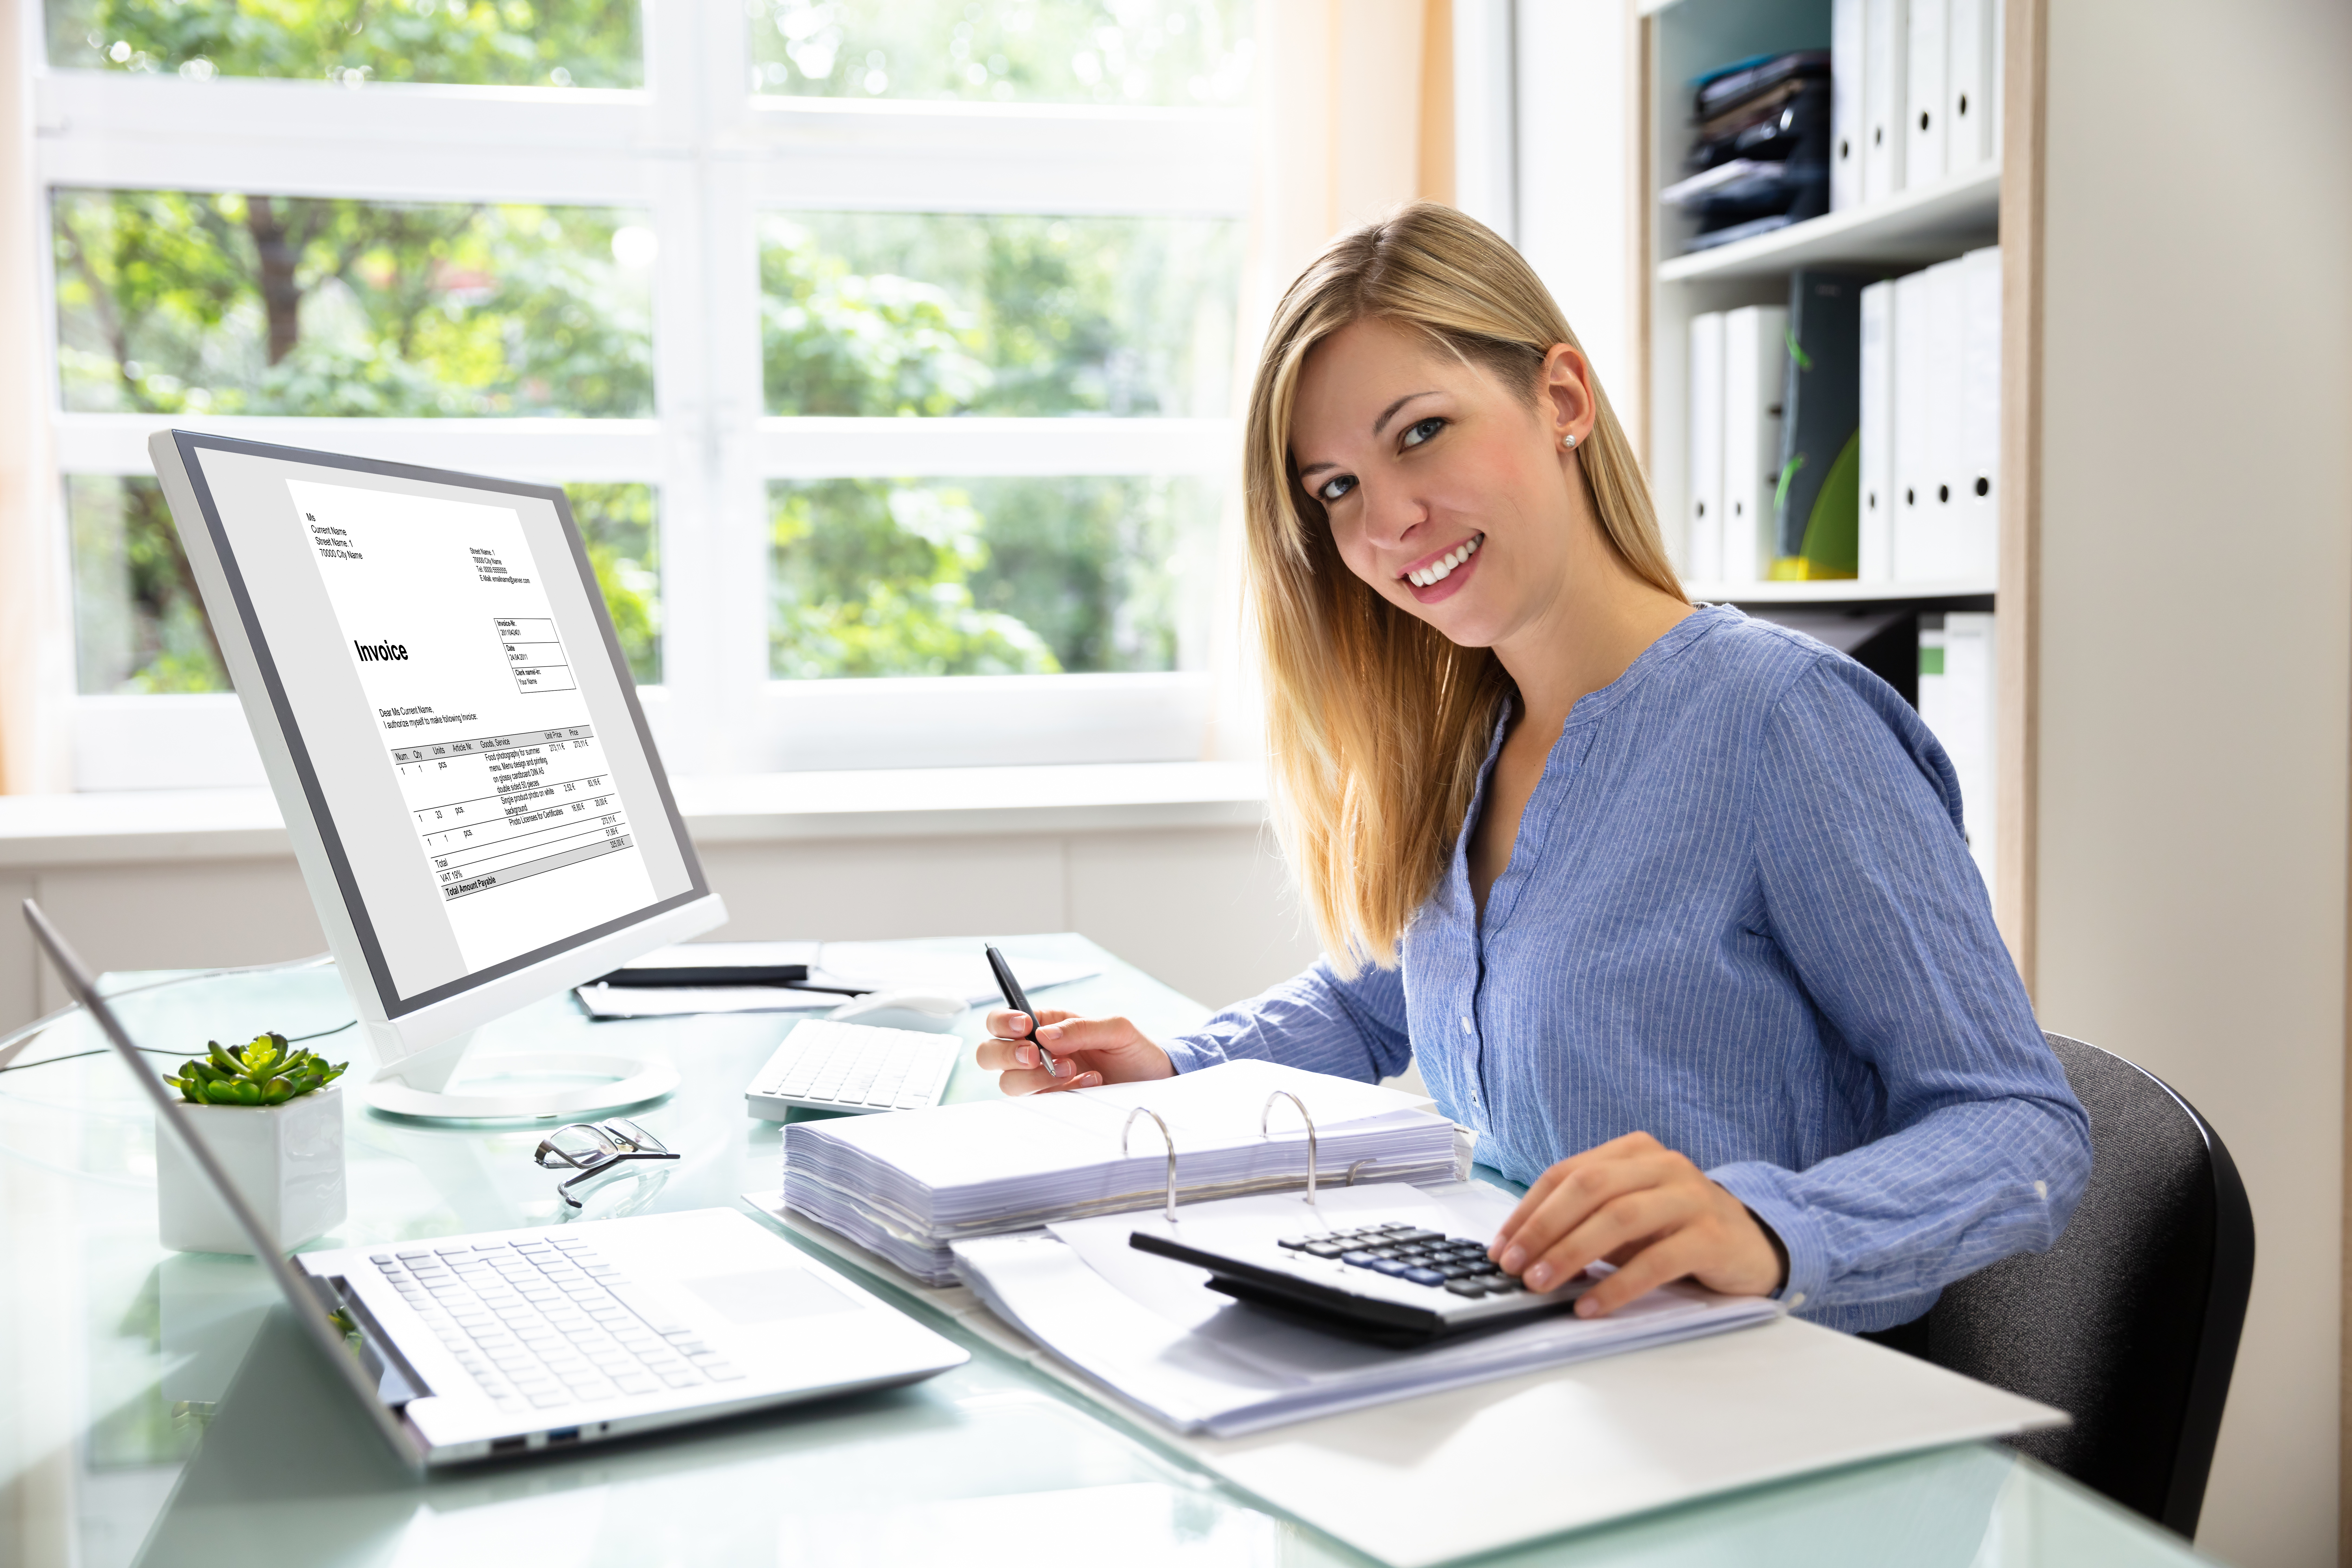 Young Businesswoman Calculating Bill With Computer And Laptop On Desk, UK small buisiness accountancy software concept